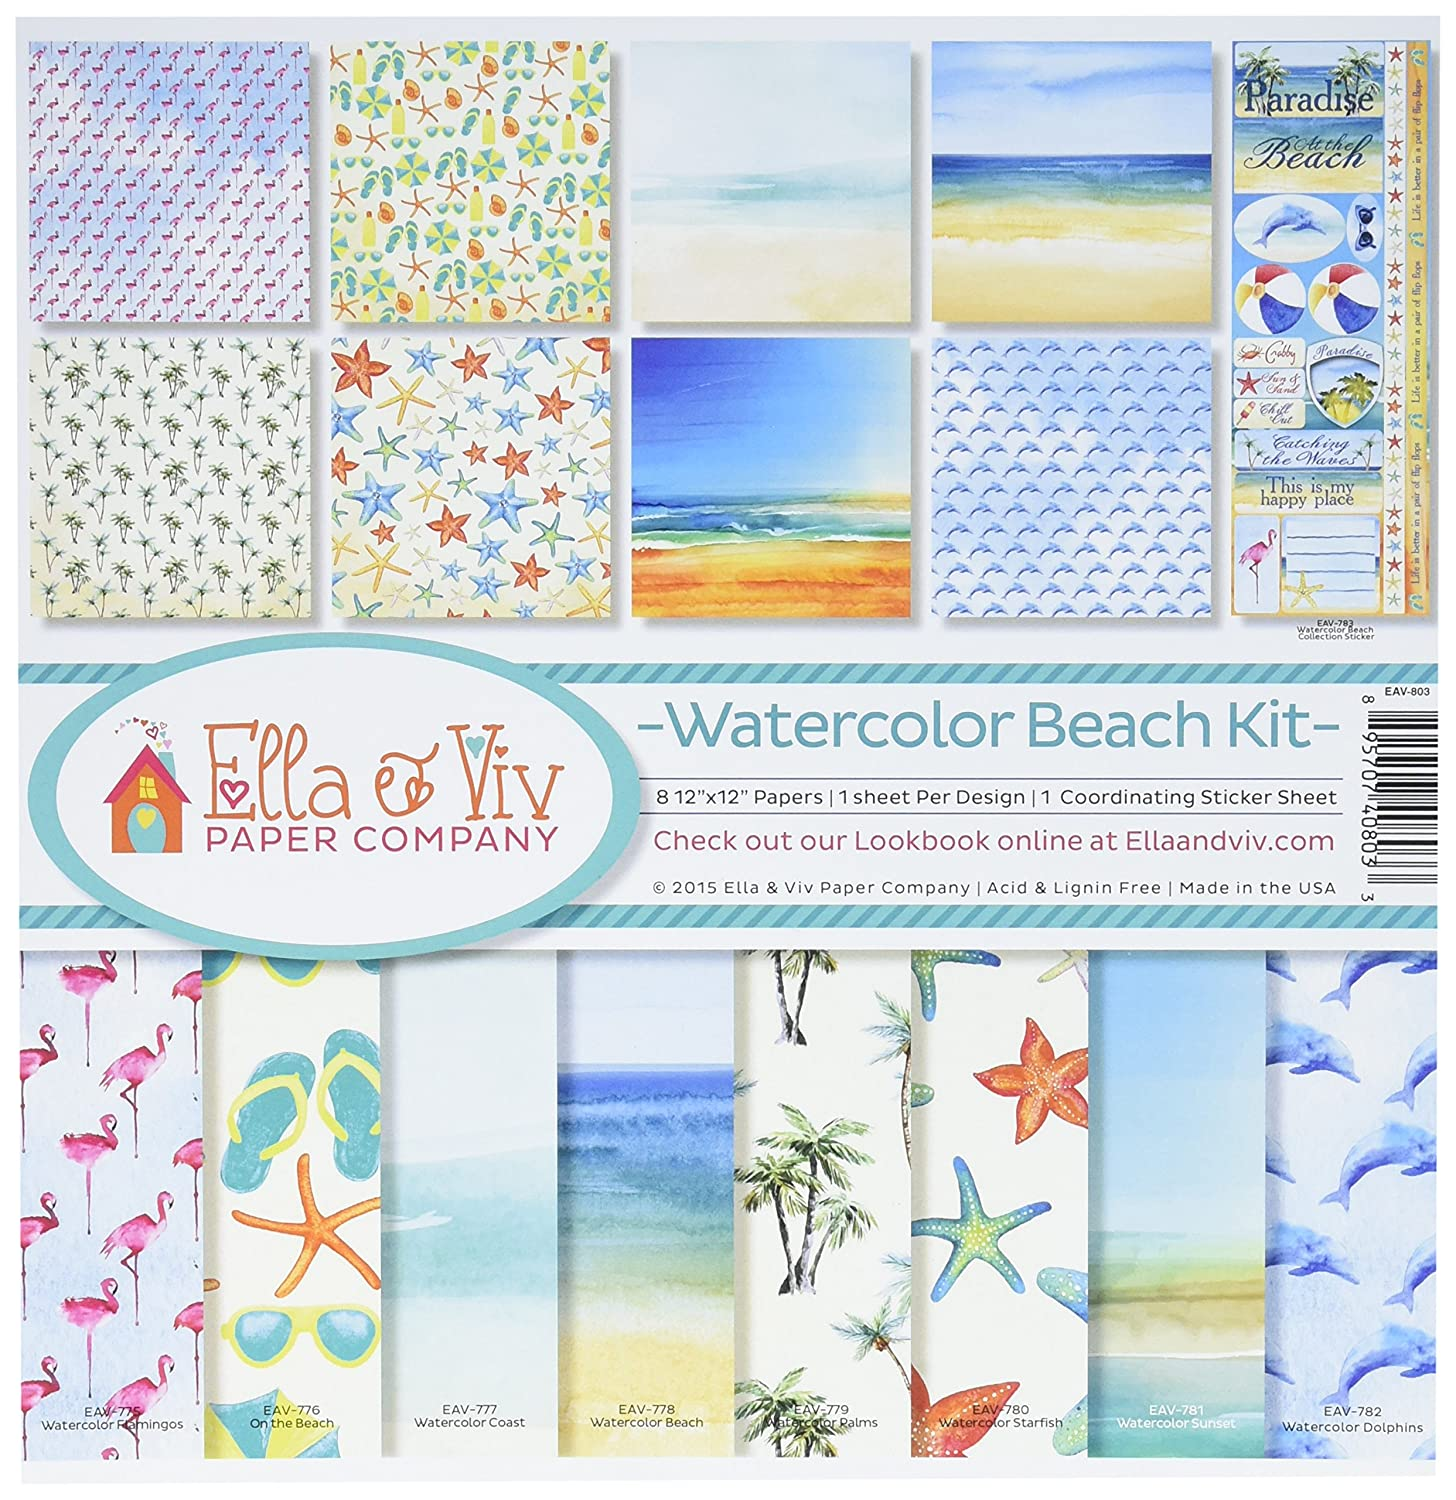 Reminisce EAV-803 Watercolor Beach Collection Kit